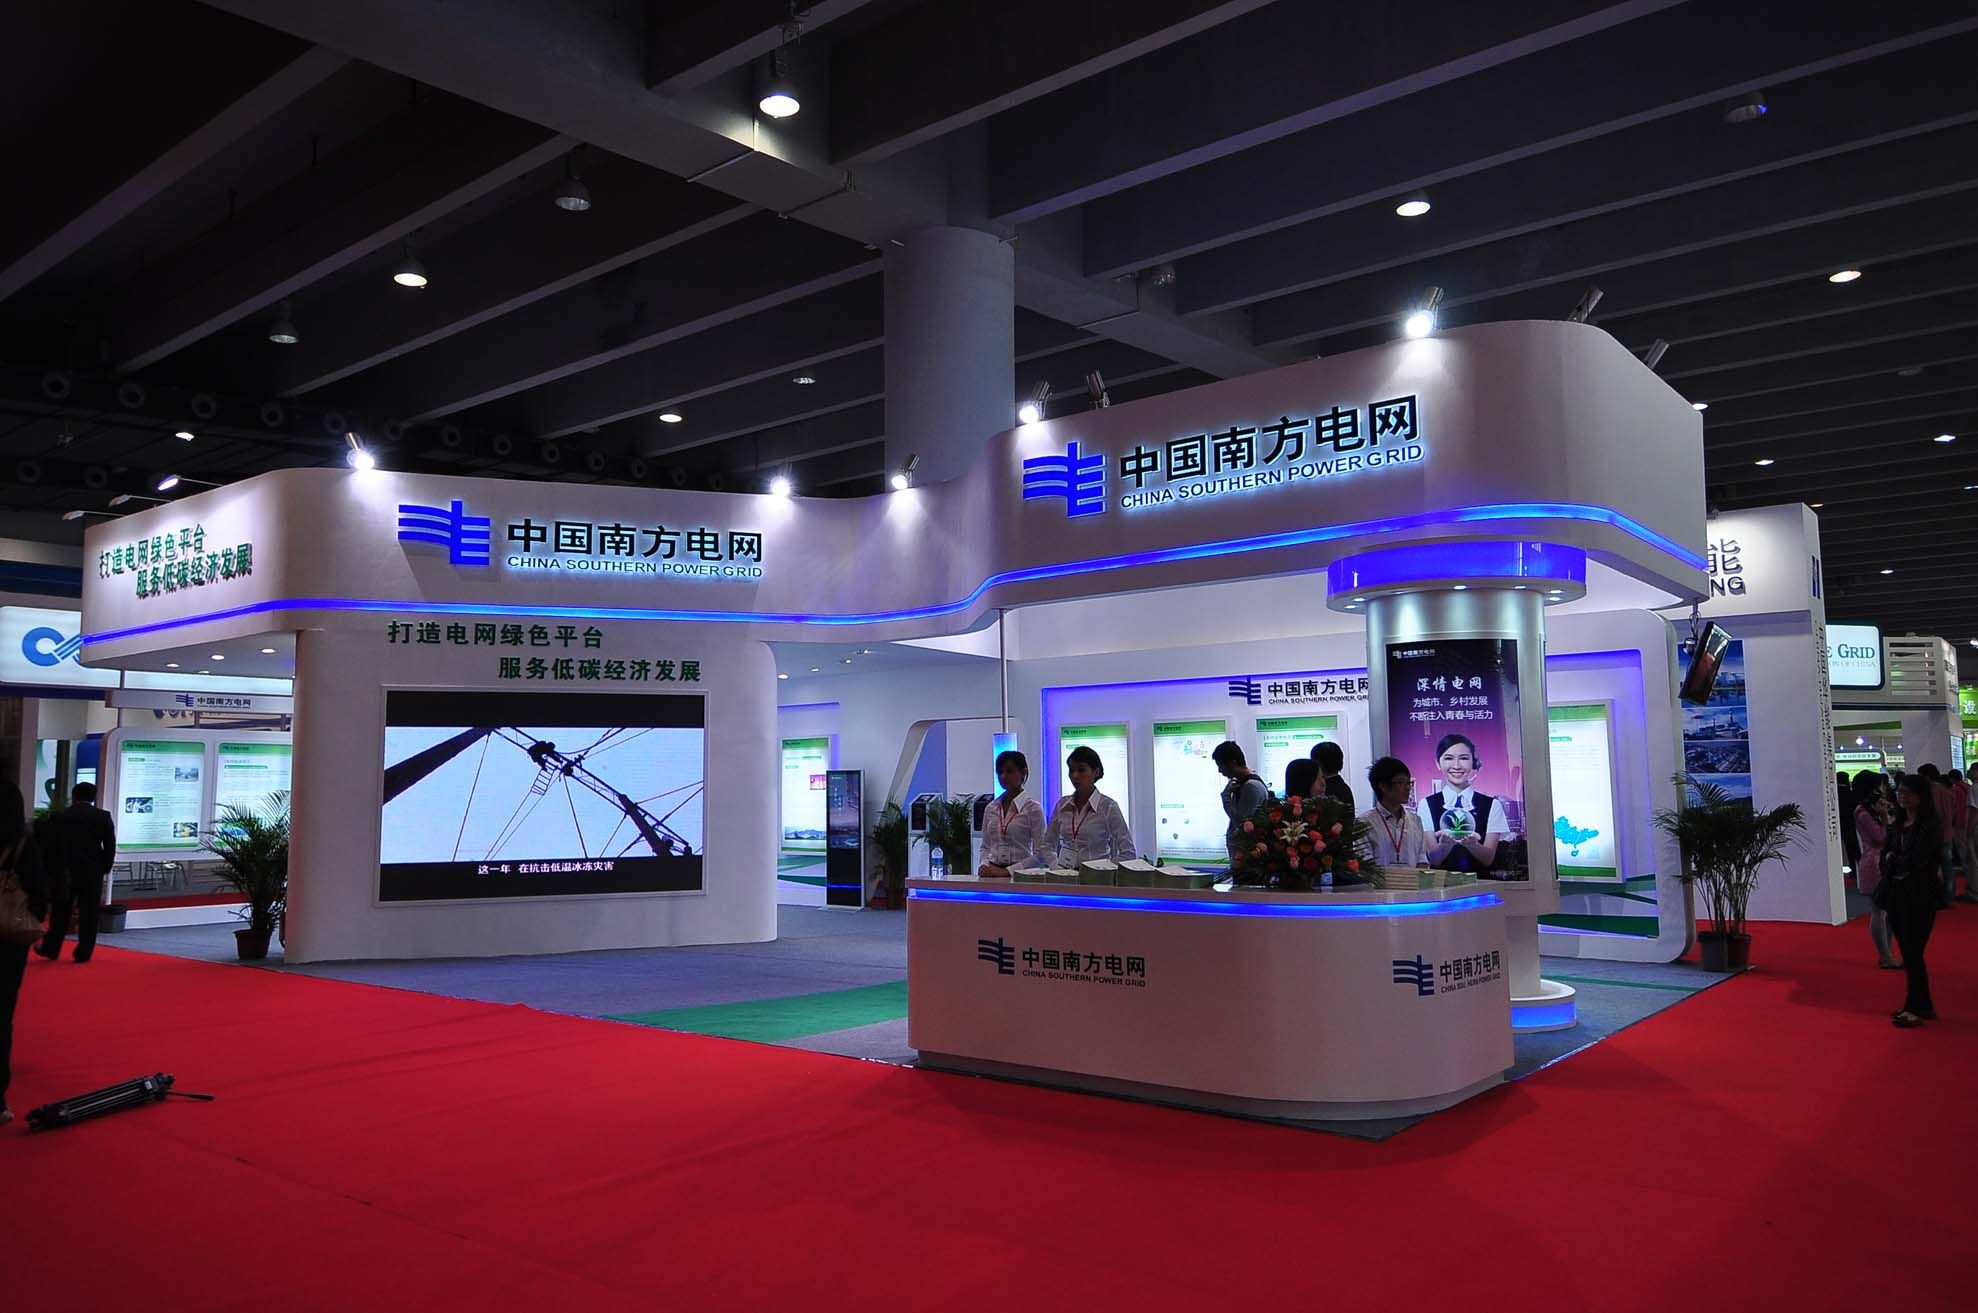 D Exhibition China : China southern power grid stand design and construction